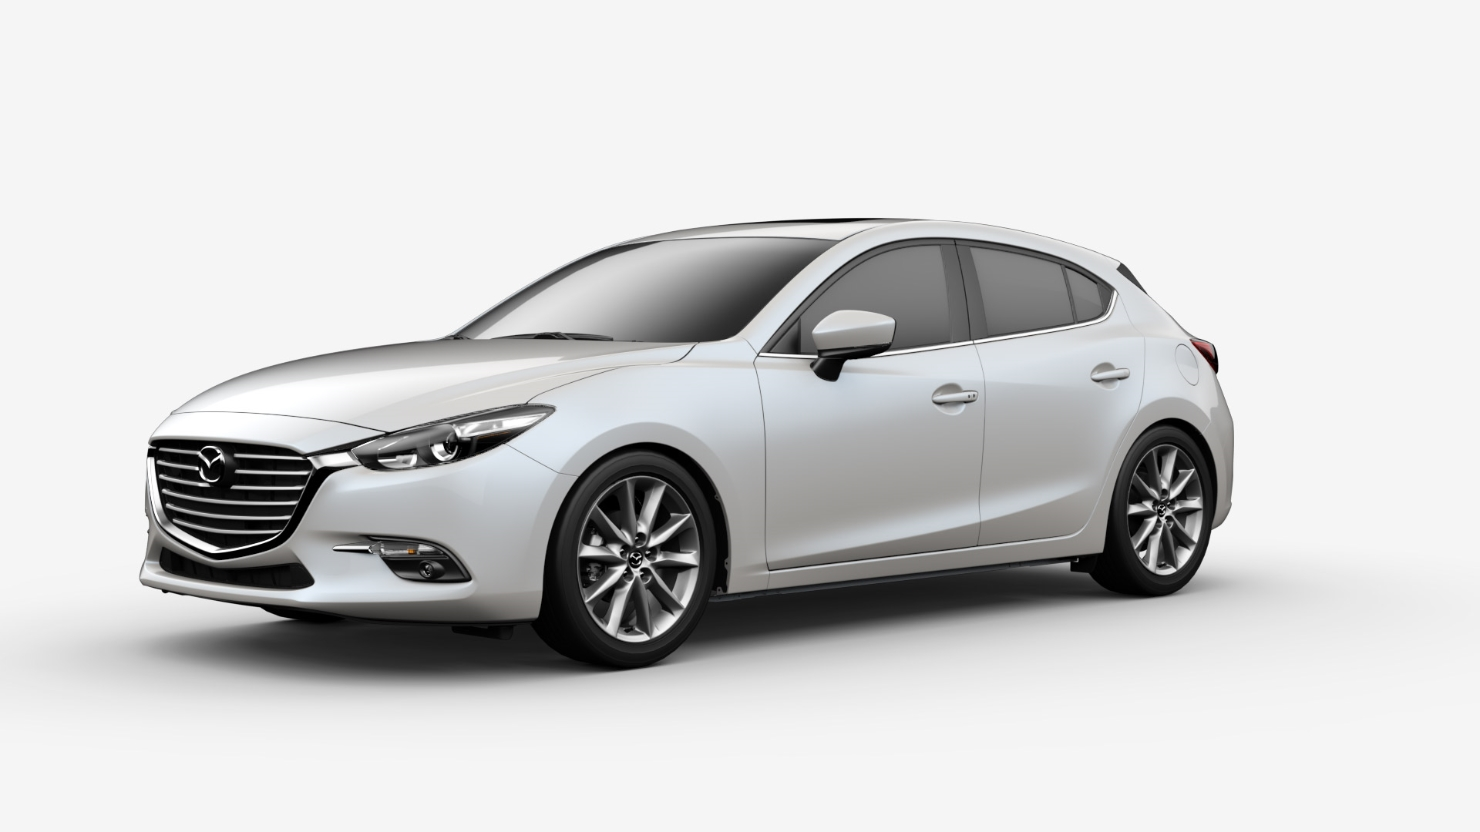 2017 mazda3 hatchback paint color options. Black Bedroom Furniture Sets. Home Design Ideas